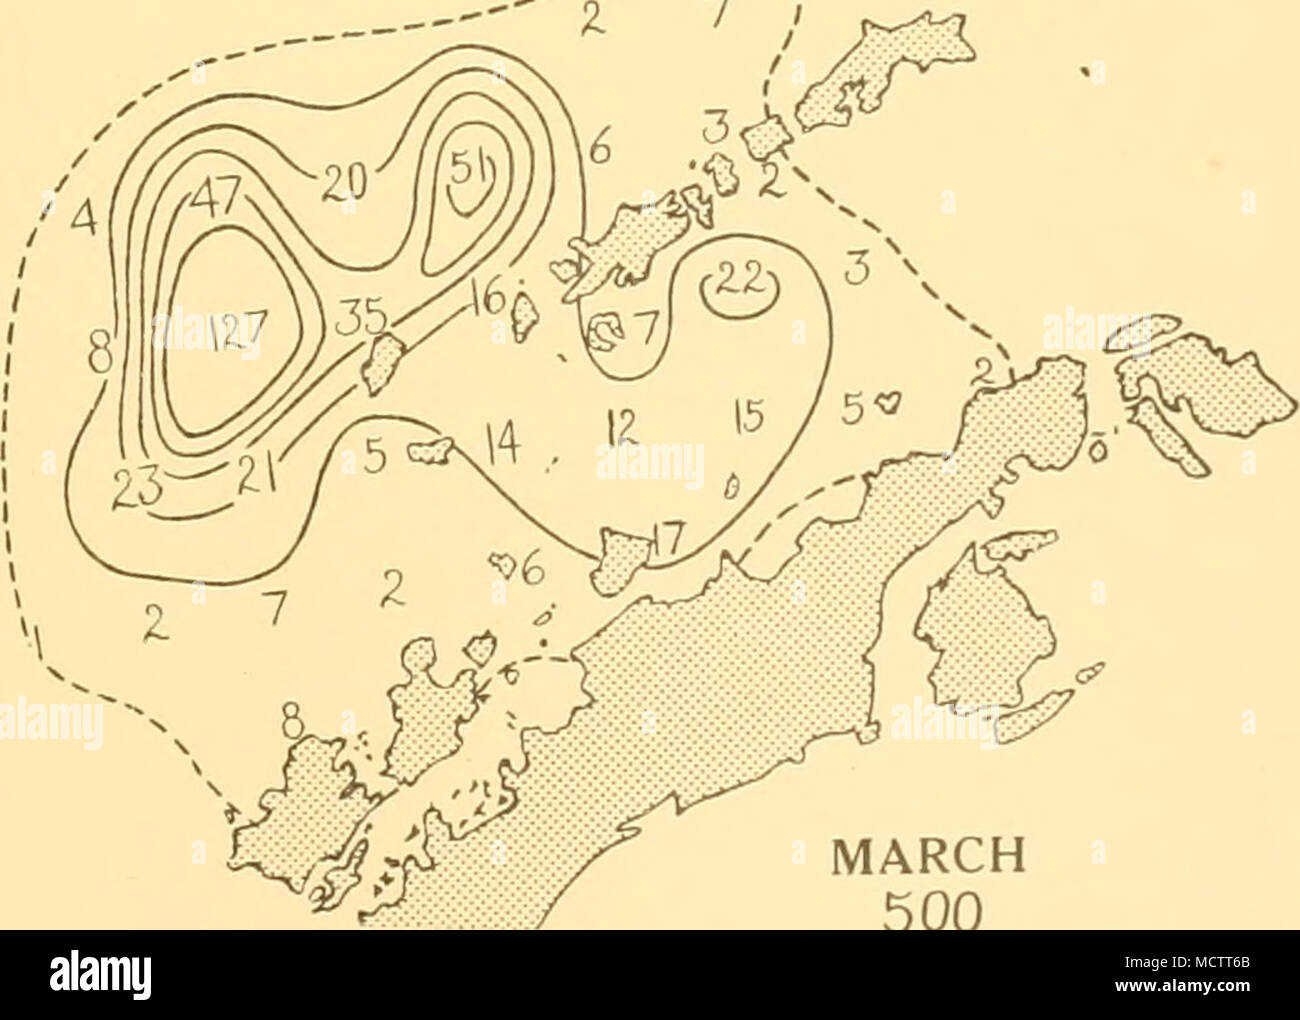 . MARCH 500 SCALE OF NAUTICAL MILES. 100 200 30O Distribution of Fin whales taken on the South Shetland grounds in season 1925-6 - Stock Image